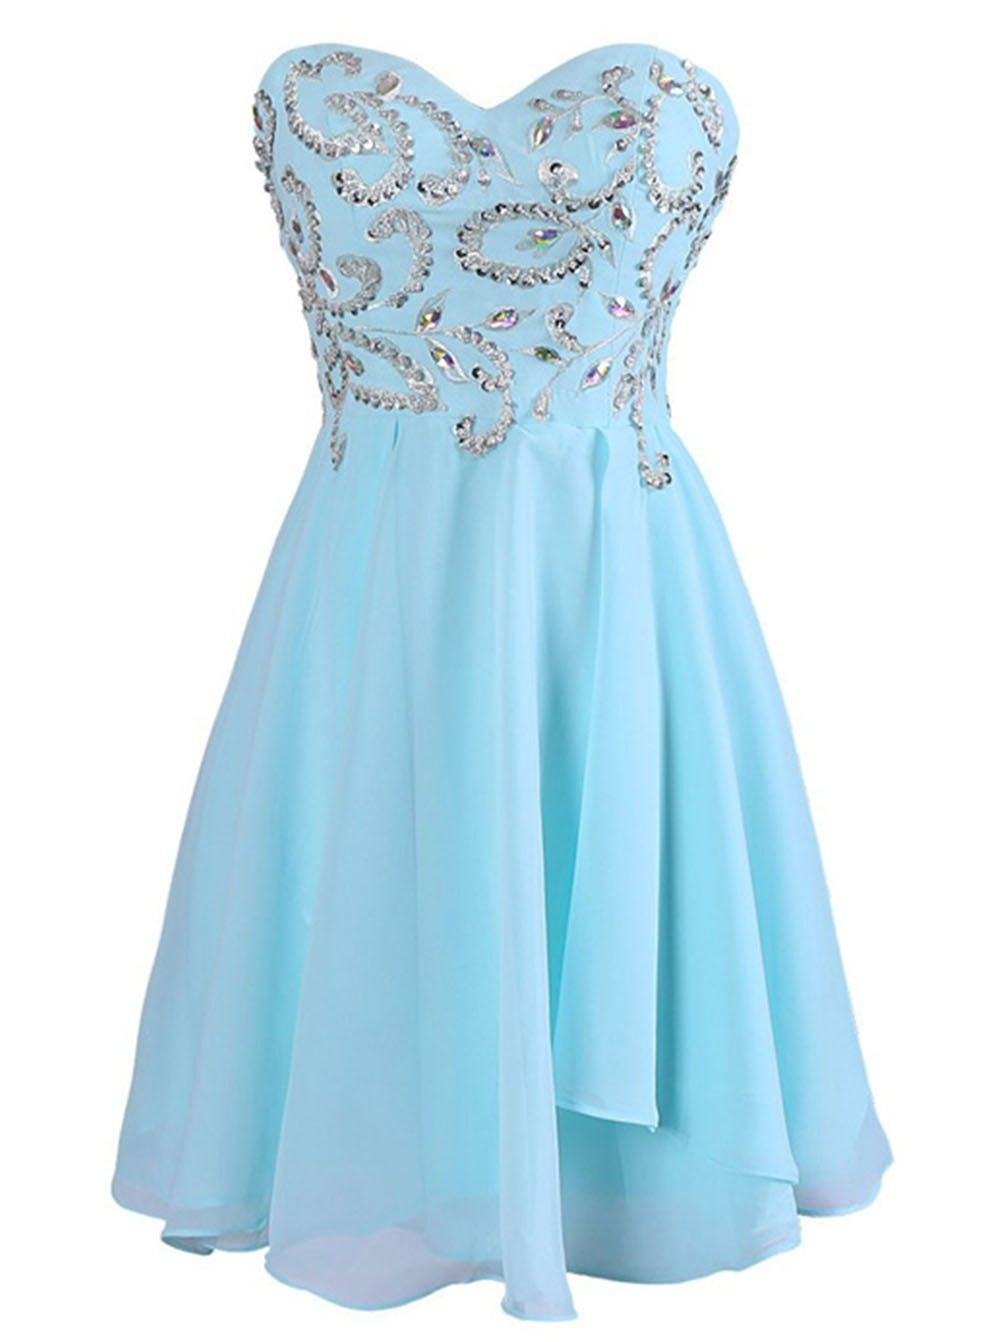 Exquisite sweetheart short chiffon blue homecoming dress with